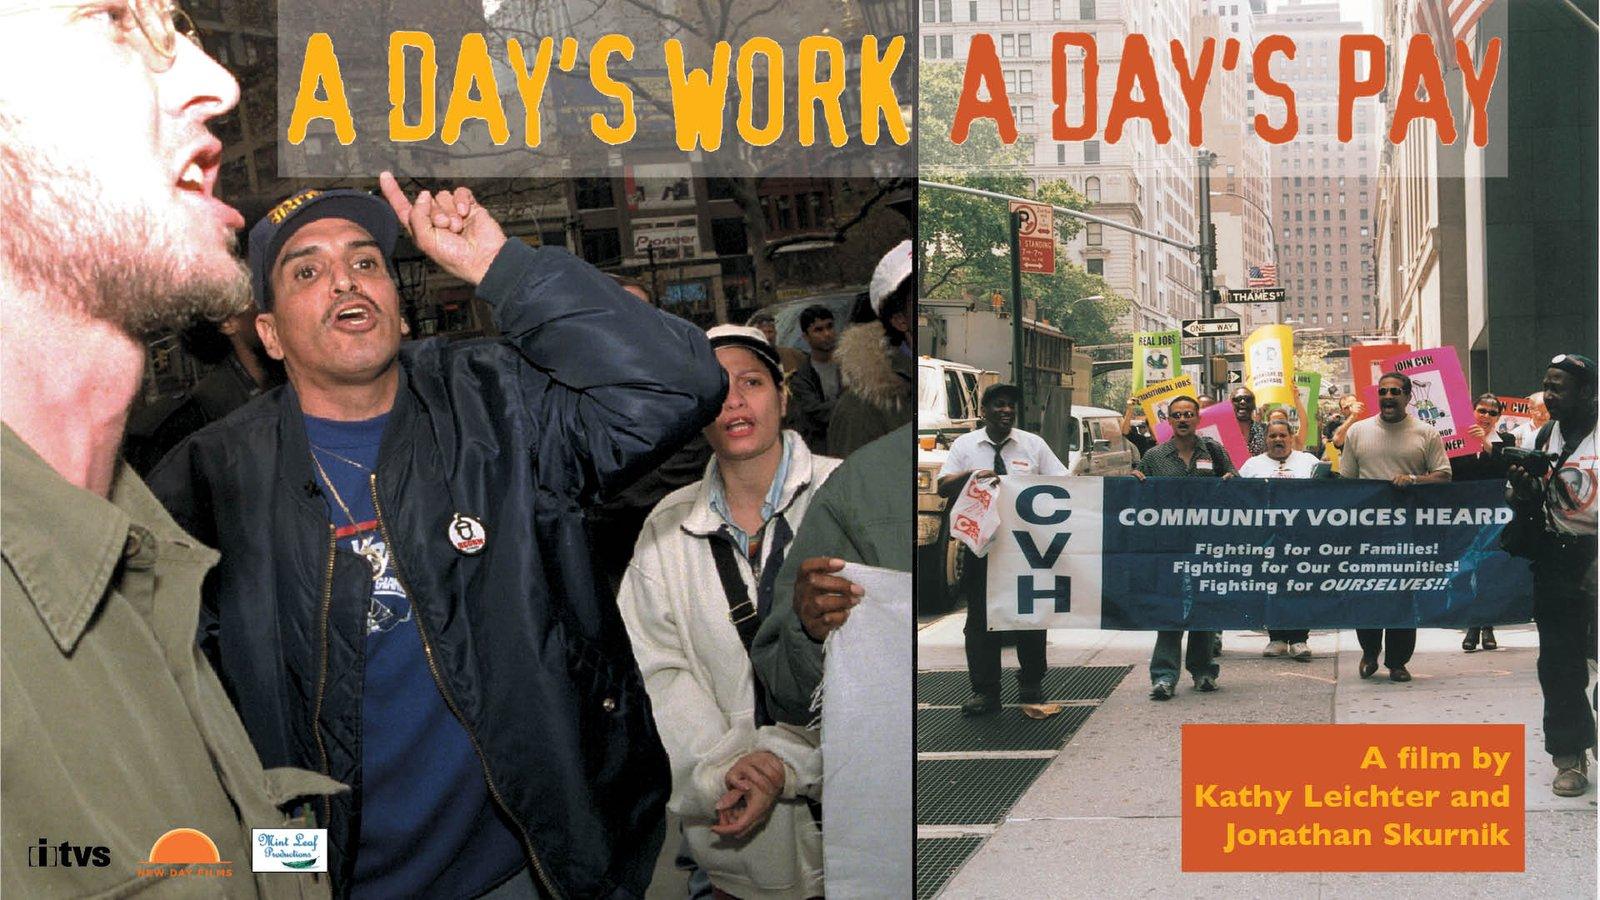 A Day's Work, A Day's Pay - Welfare-to-Work